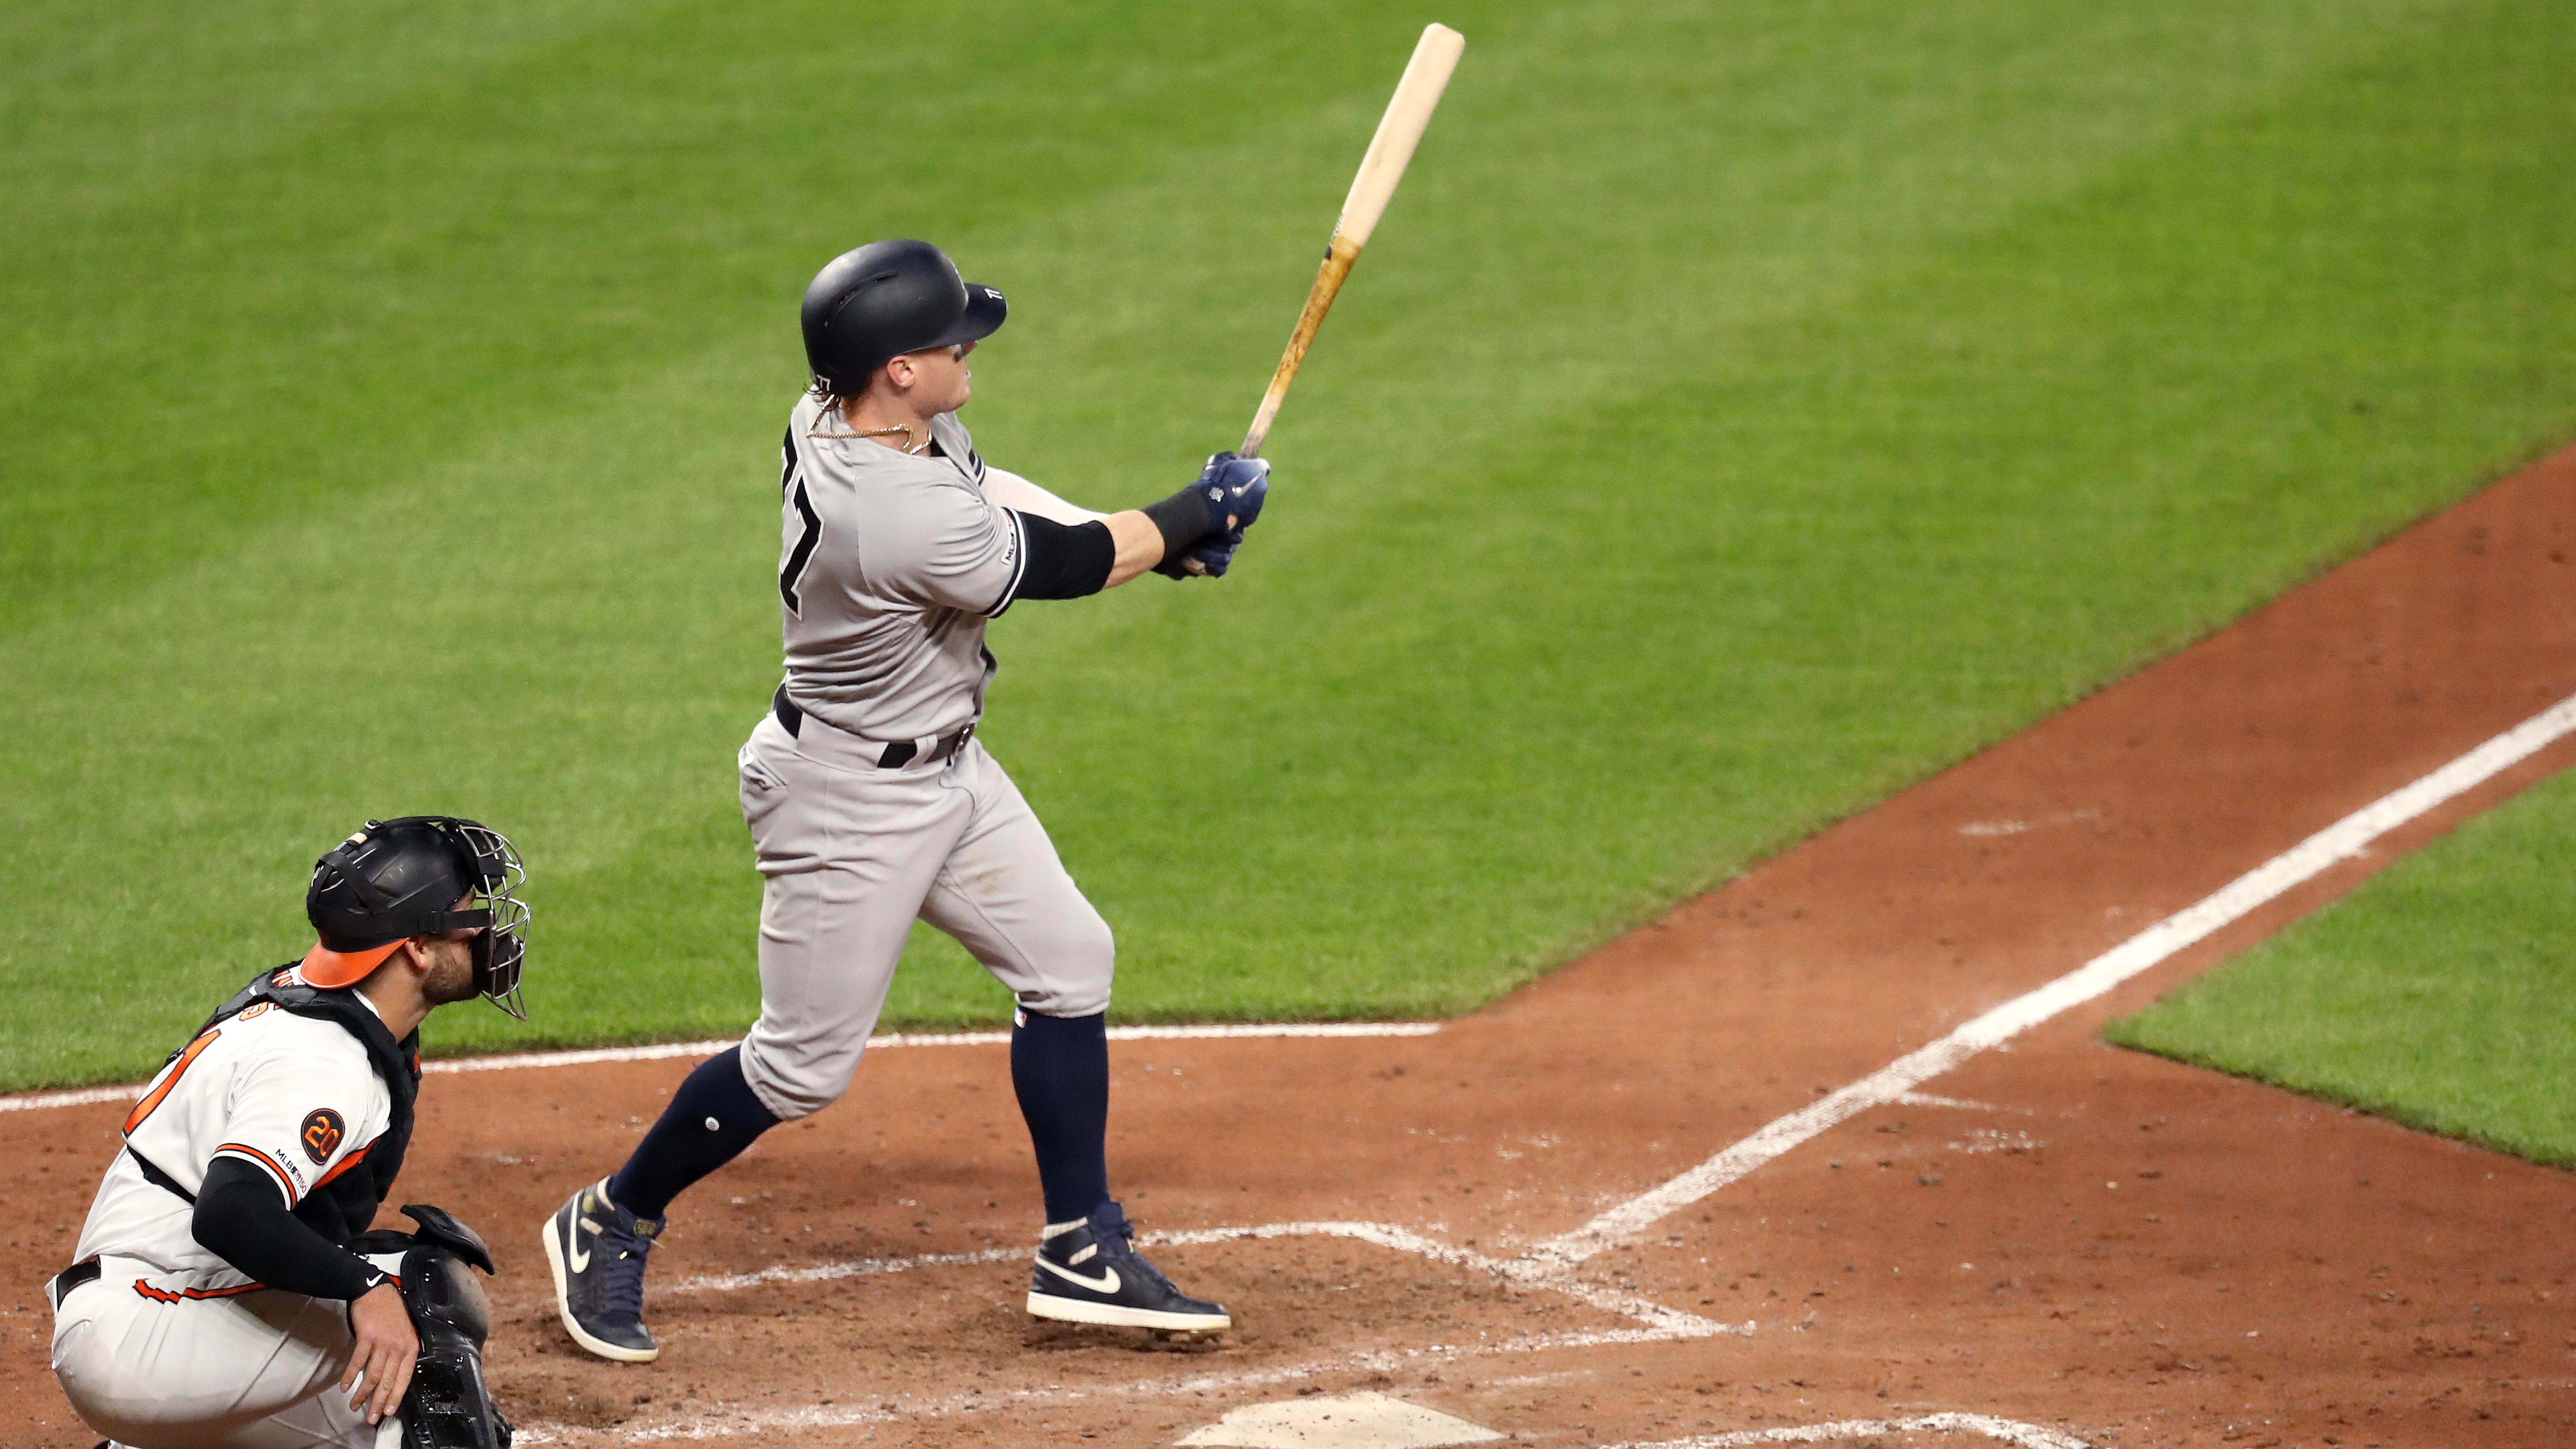 BALTIMORE, MARYLAND - MAY 21: Clint Frazier #77 of the New York Yankees follows his three RBI home run as catcher Austin Wynns #61 of the Baltimore Orioles looks on in the fifth inning at Oriole Park at Camden Yards on May 21, 2019 in Baltimore, Maryland. (Photo by Rob Carr/Getty Images)